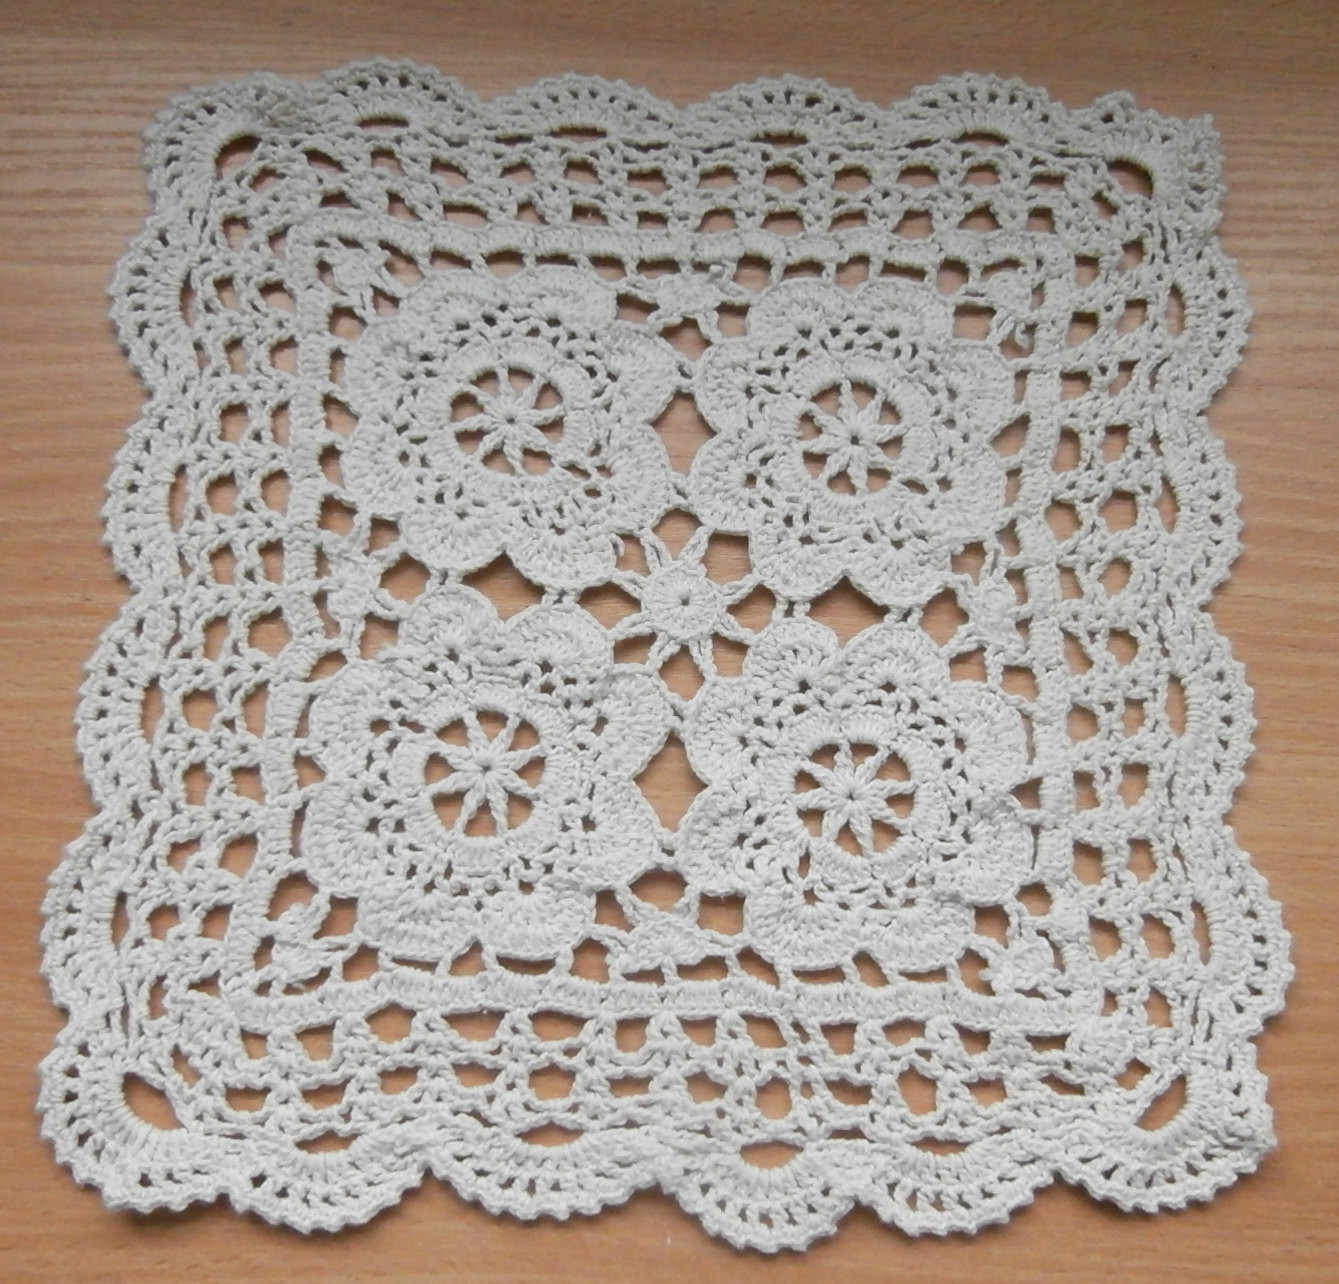 Square Doilies Luxury Ecru Beige Doily Square Crochet Doily 9 5×9 5 Inches Home Of Lovely 50 Pictures Square Doilies